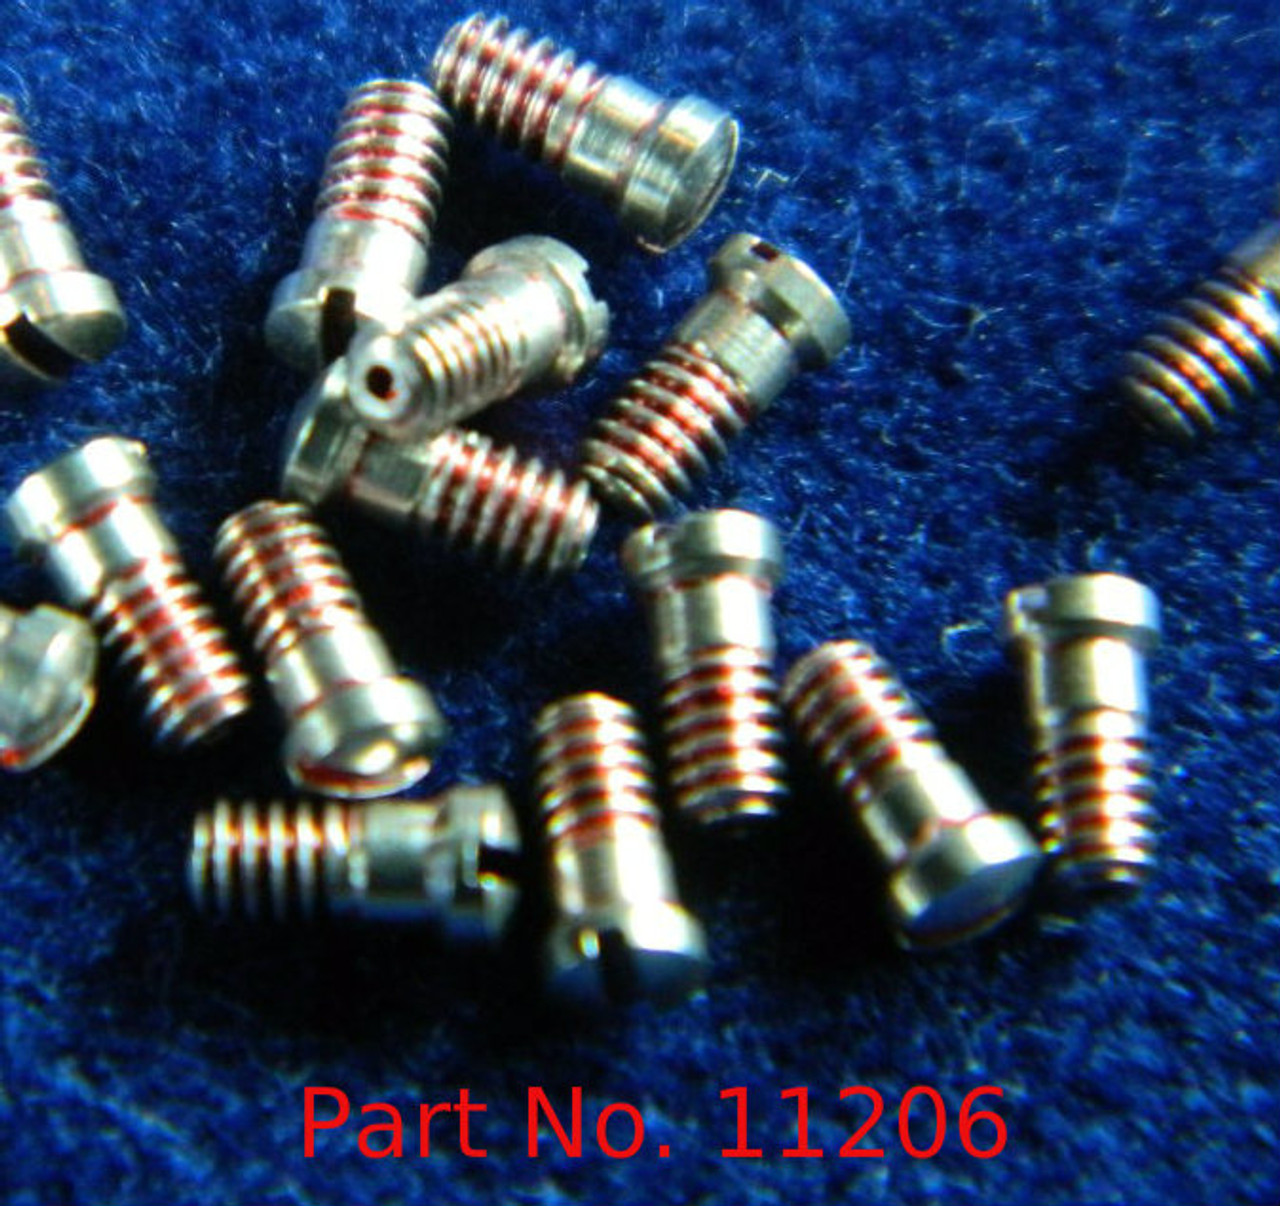 """Machine Screw special, small head, thread M1.4 pitch .30mm (Thread also called  1.40 UNM) head diameter 2.0mm, Length (shank) 2.8mm / 0.110"""" max OAL 3.0mm material Stainless steel, price for 100 pieces, finish color silver  Screw made on precision screw machines. Available with and without thread coating."""